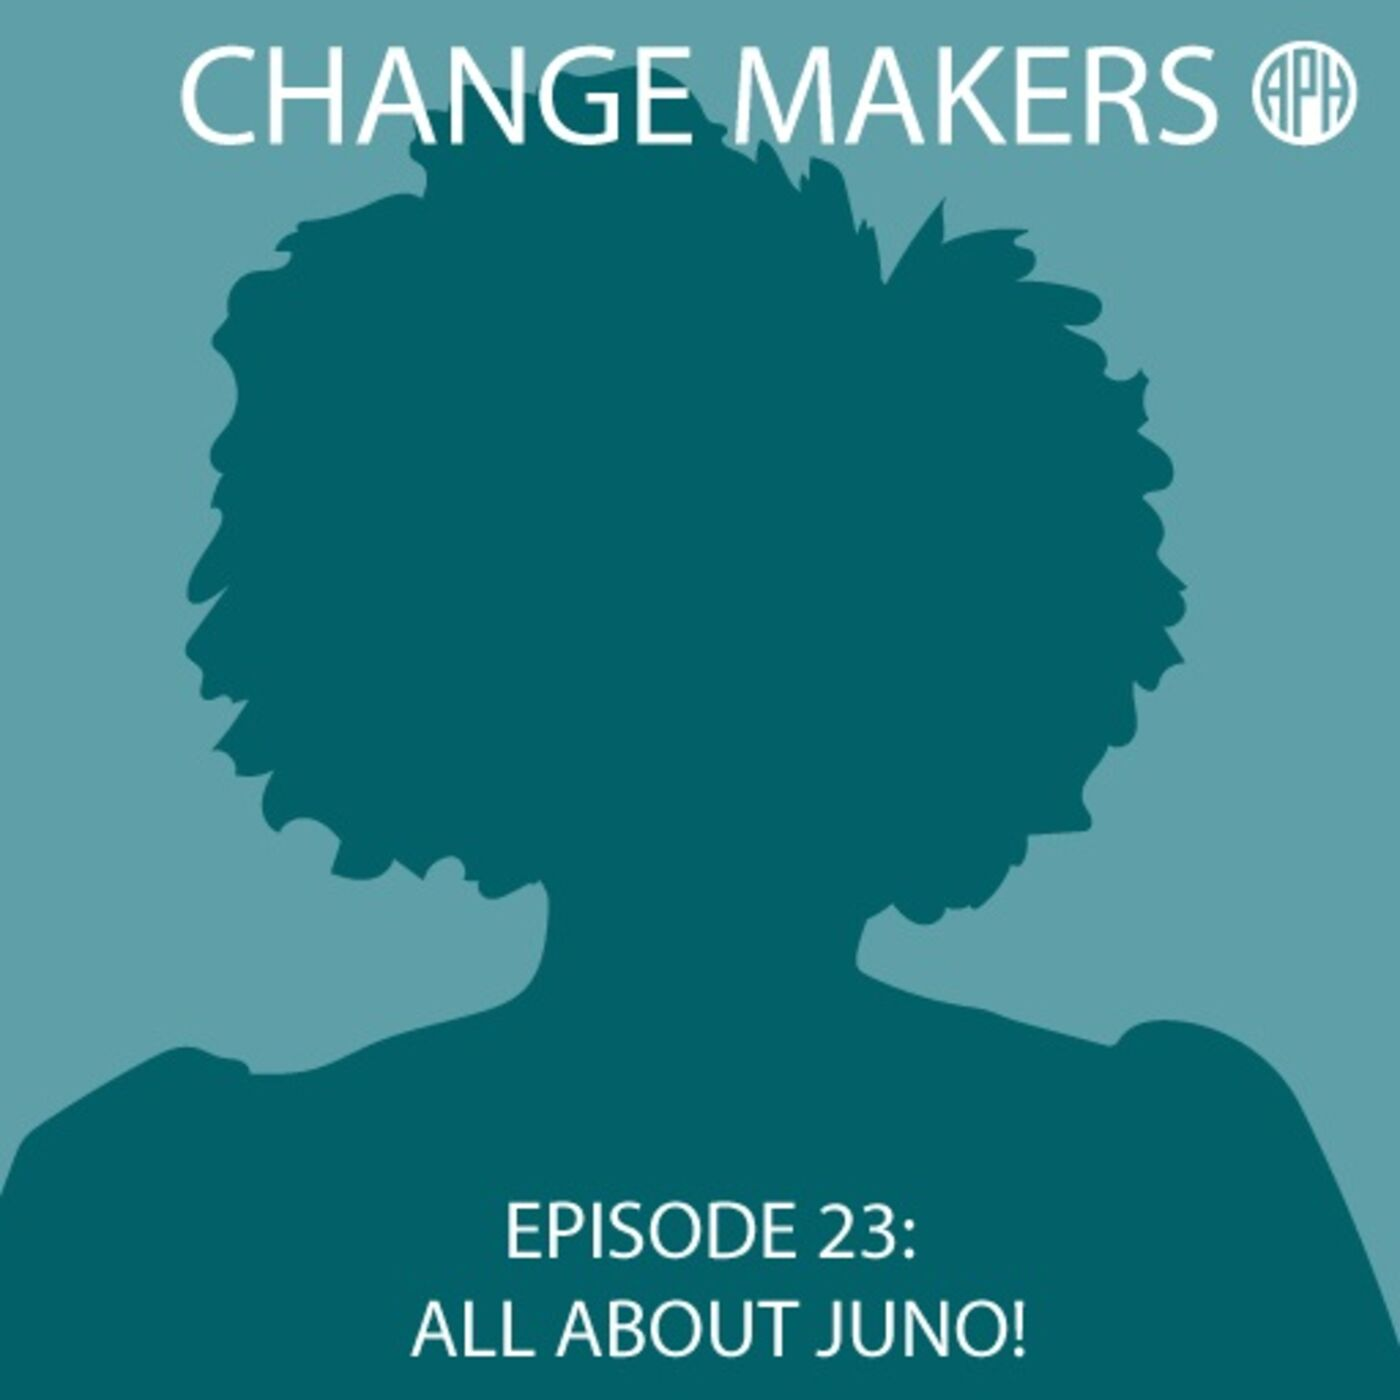 All About Juno!